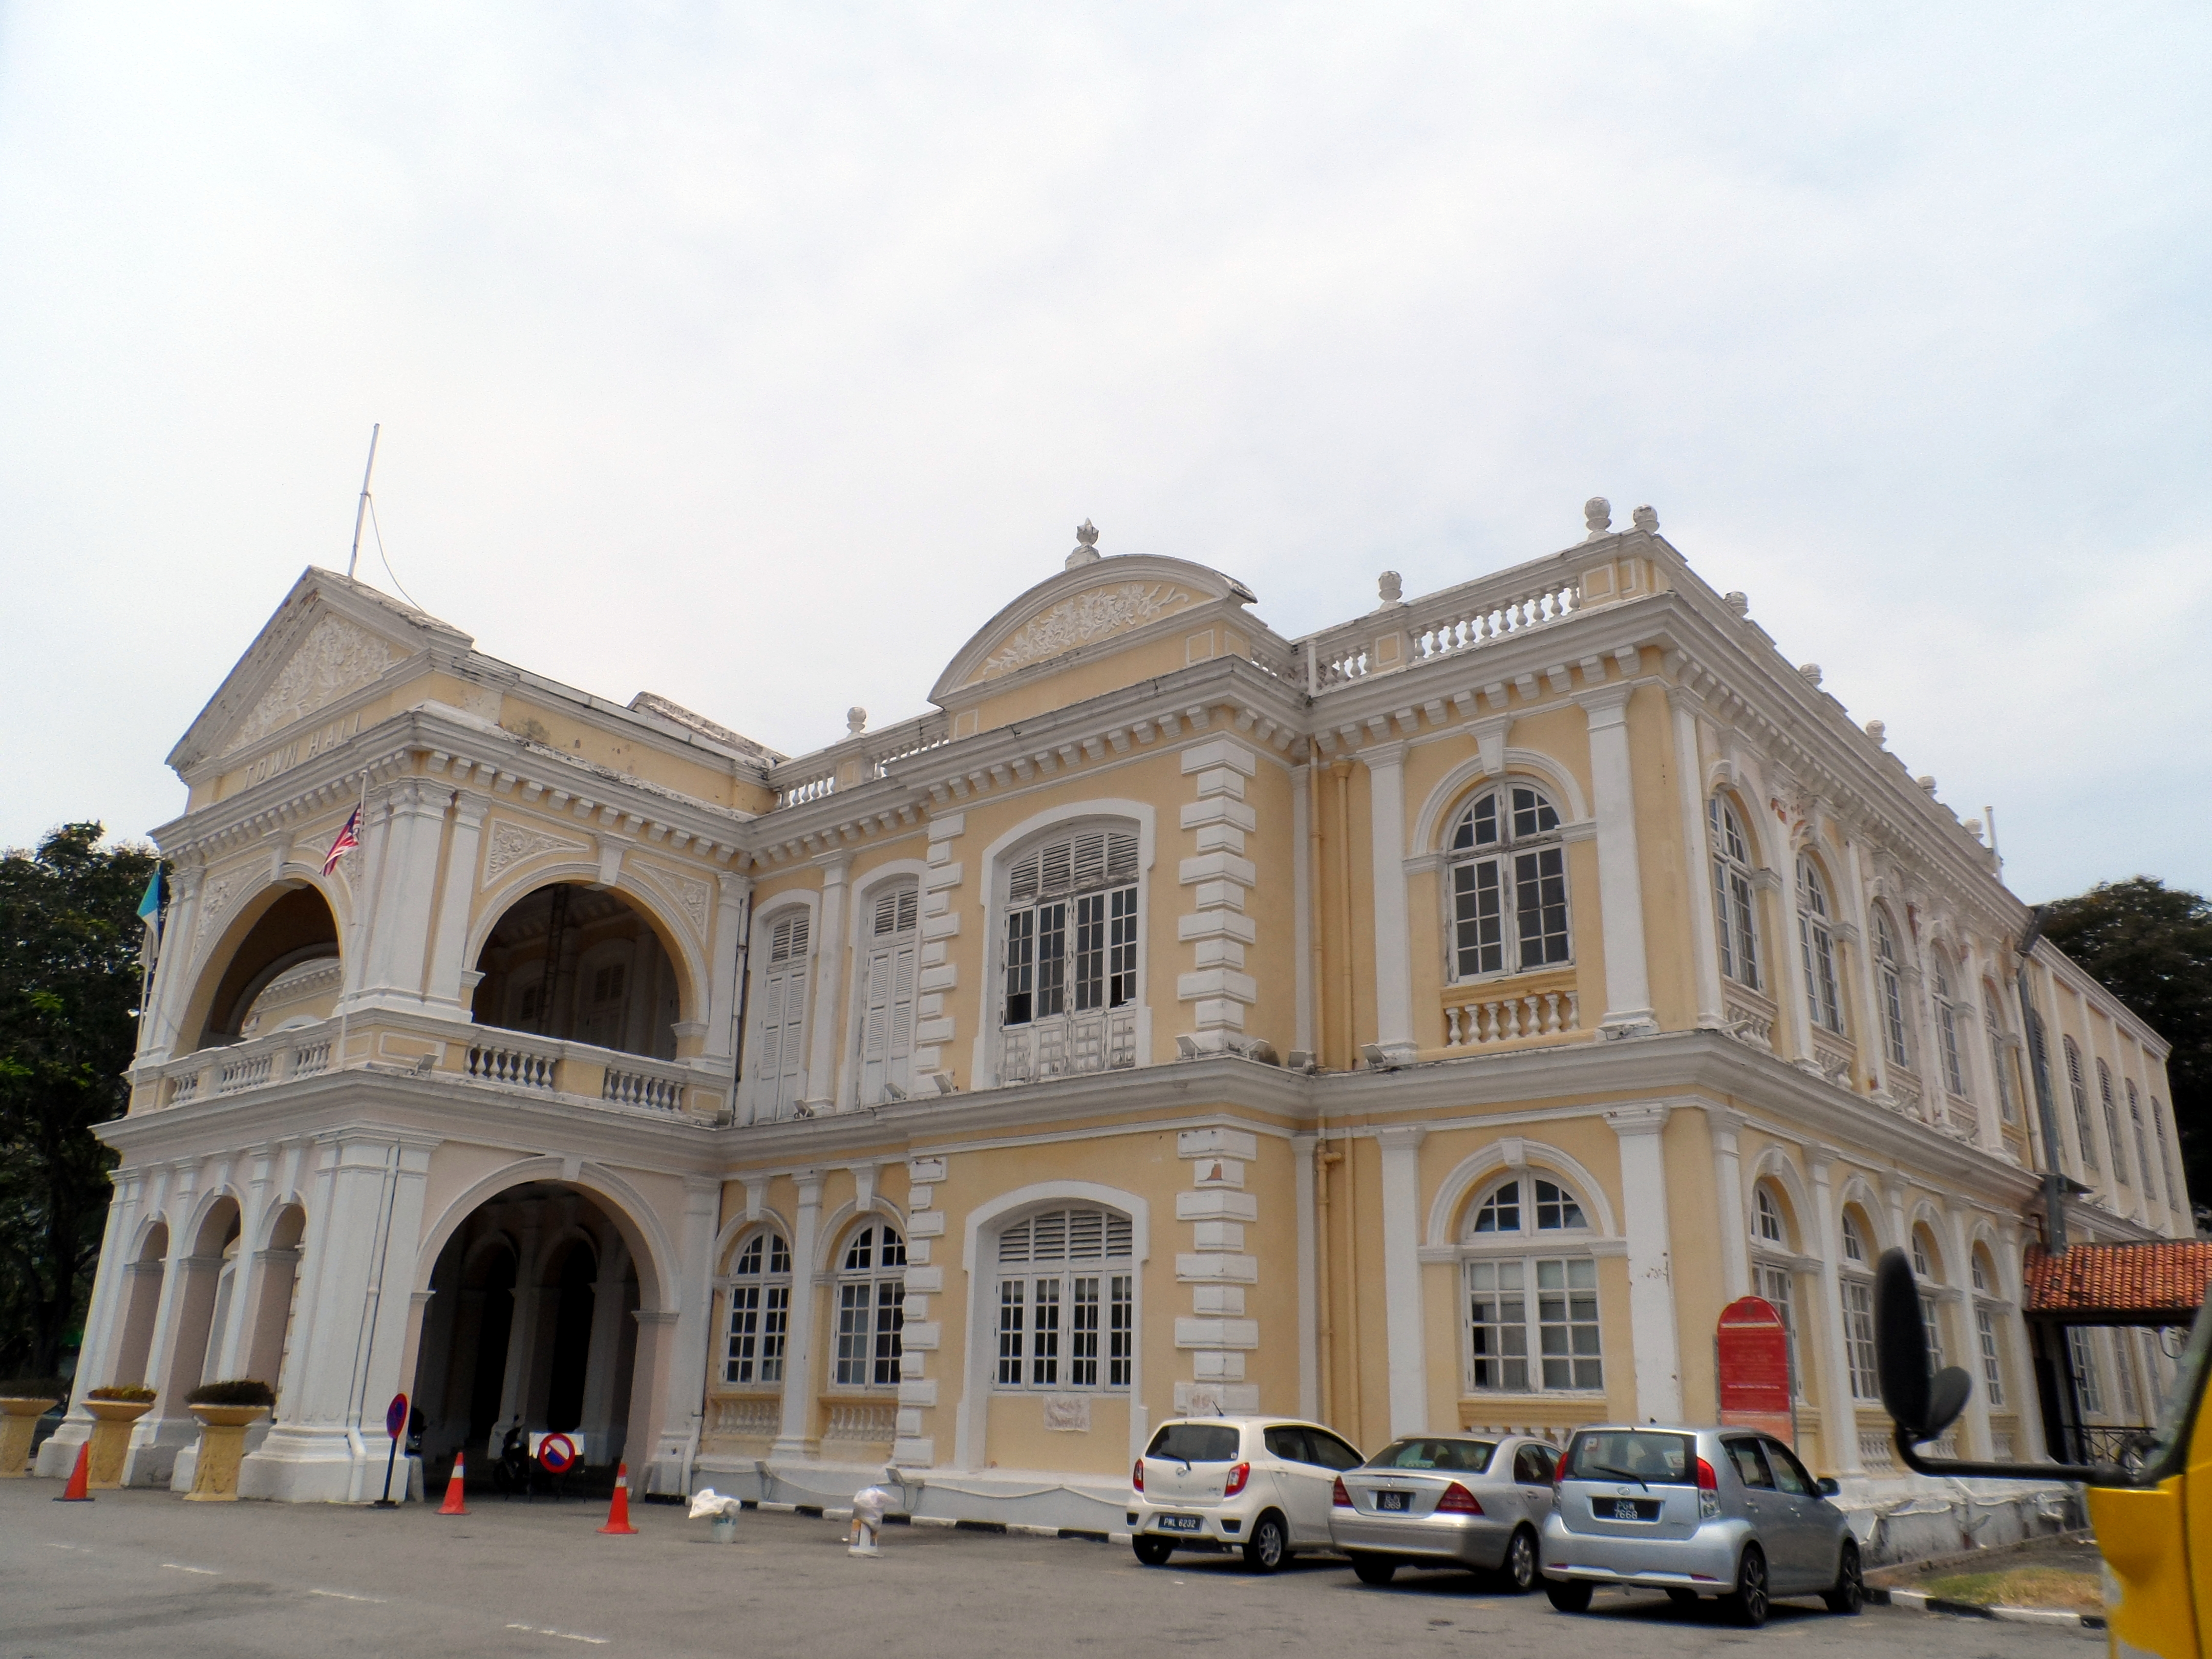 The Town Hall in George Town, Penang, built in 1880 - Photo taken on April 7, 2016